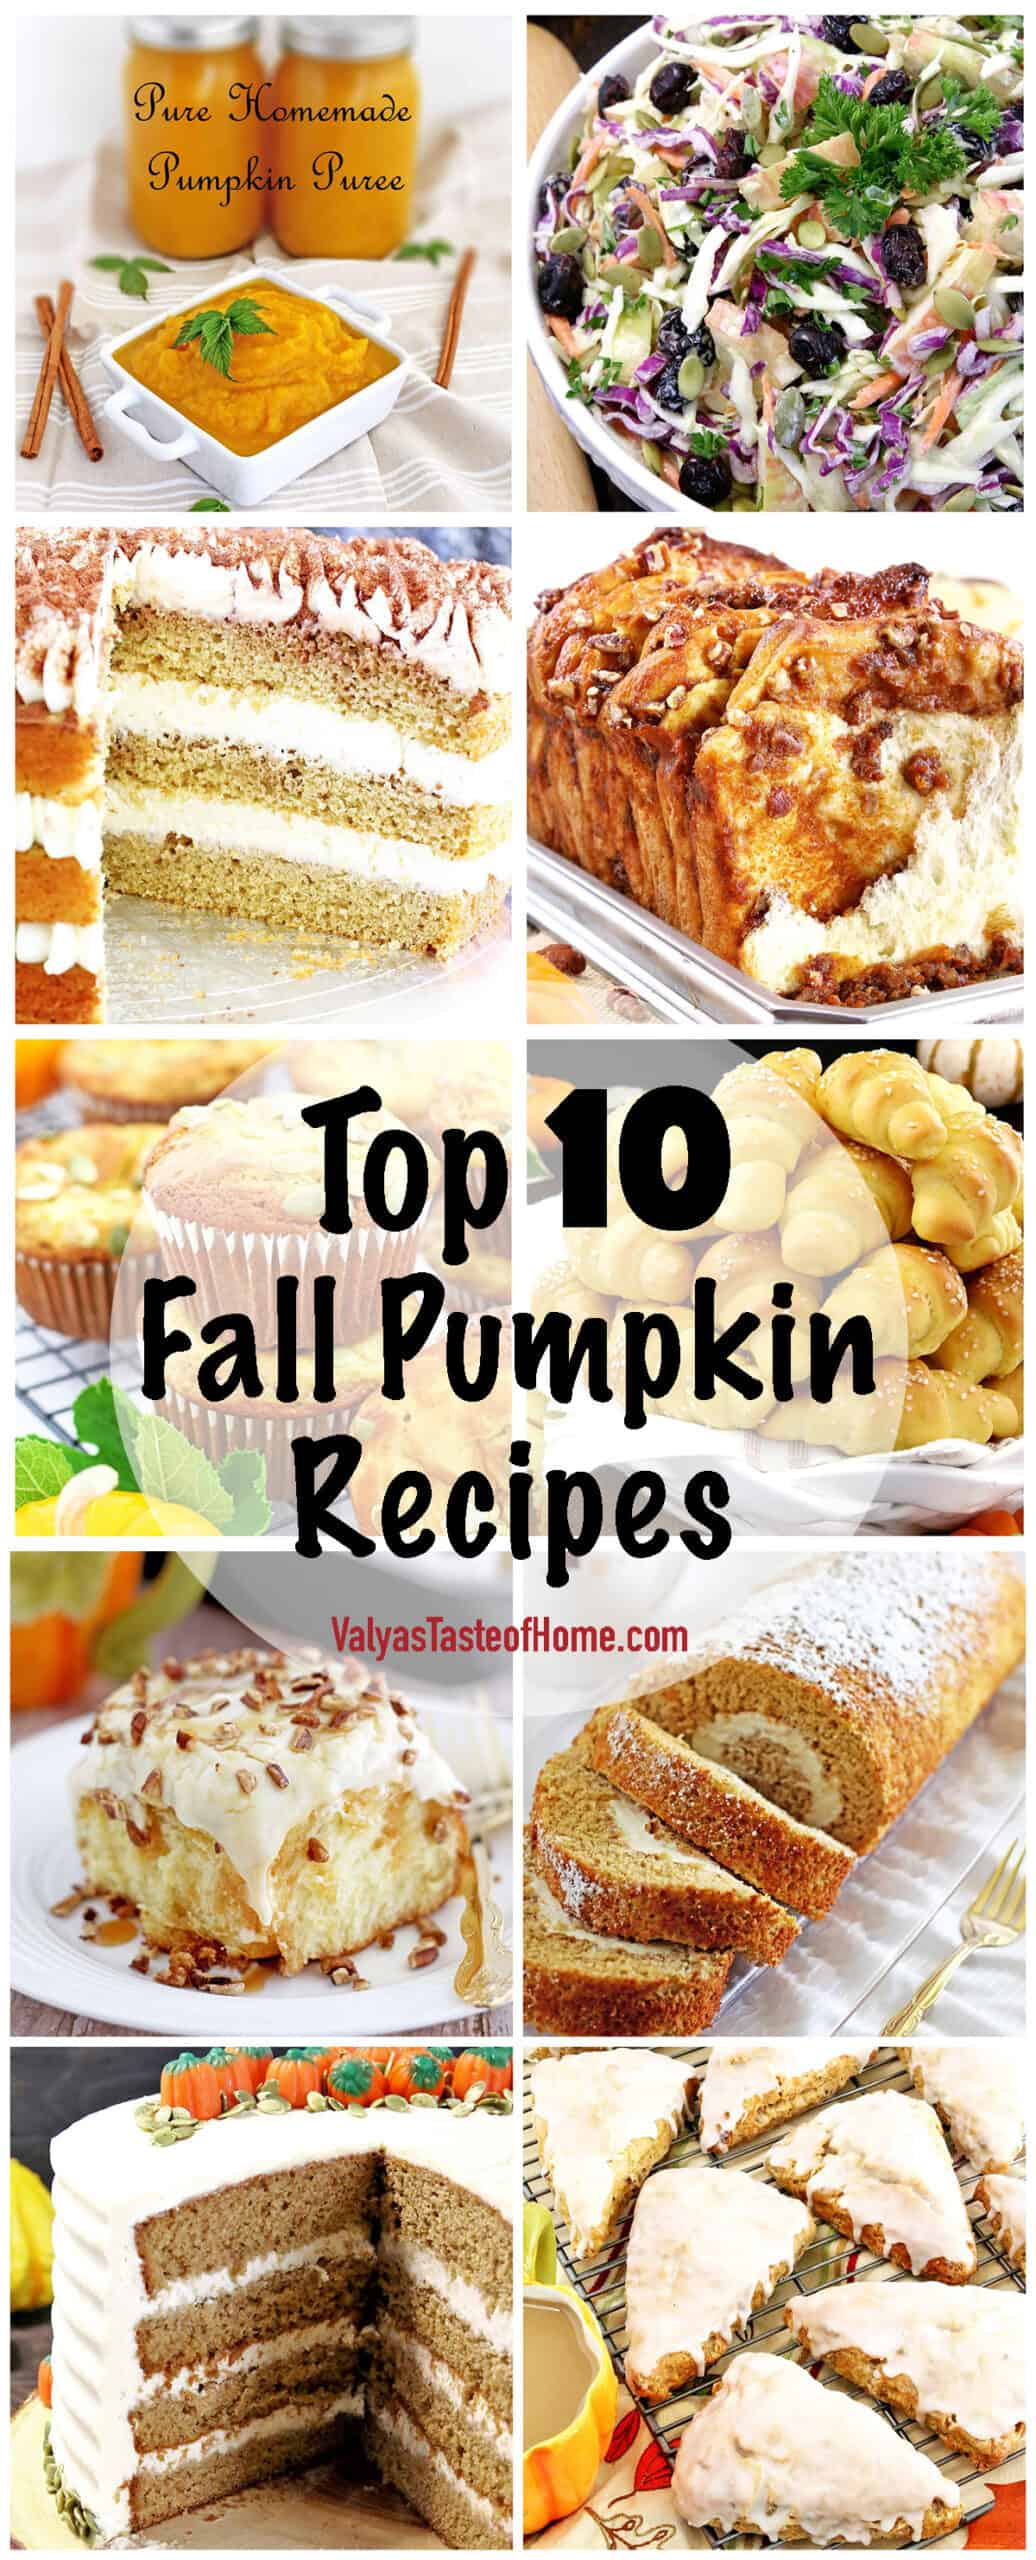 These are my favorite pumping goodies in one Top 10 Pumpkin Fall Recipes post that is perfect for upcoming holidays or any time you want your kitchen to smell like fall aroma of cinnamon, nutmeg, and pumpkin.